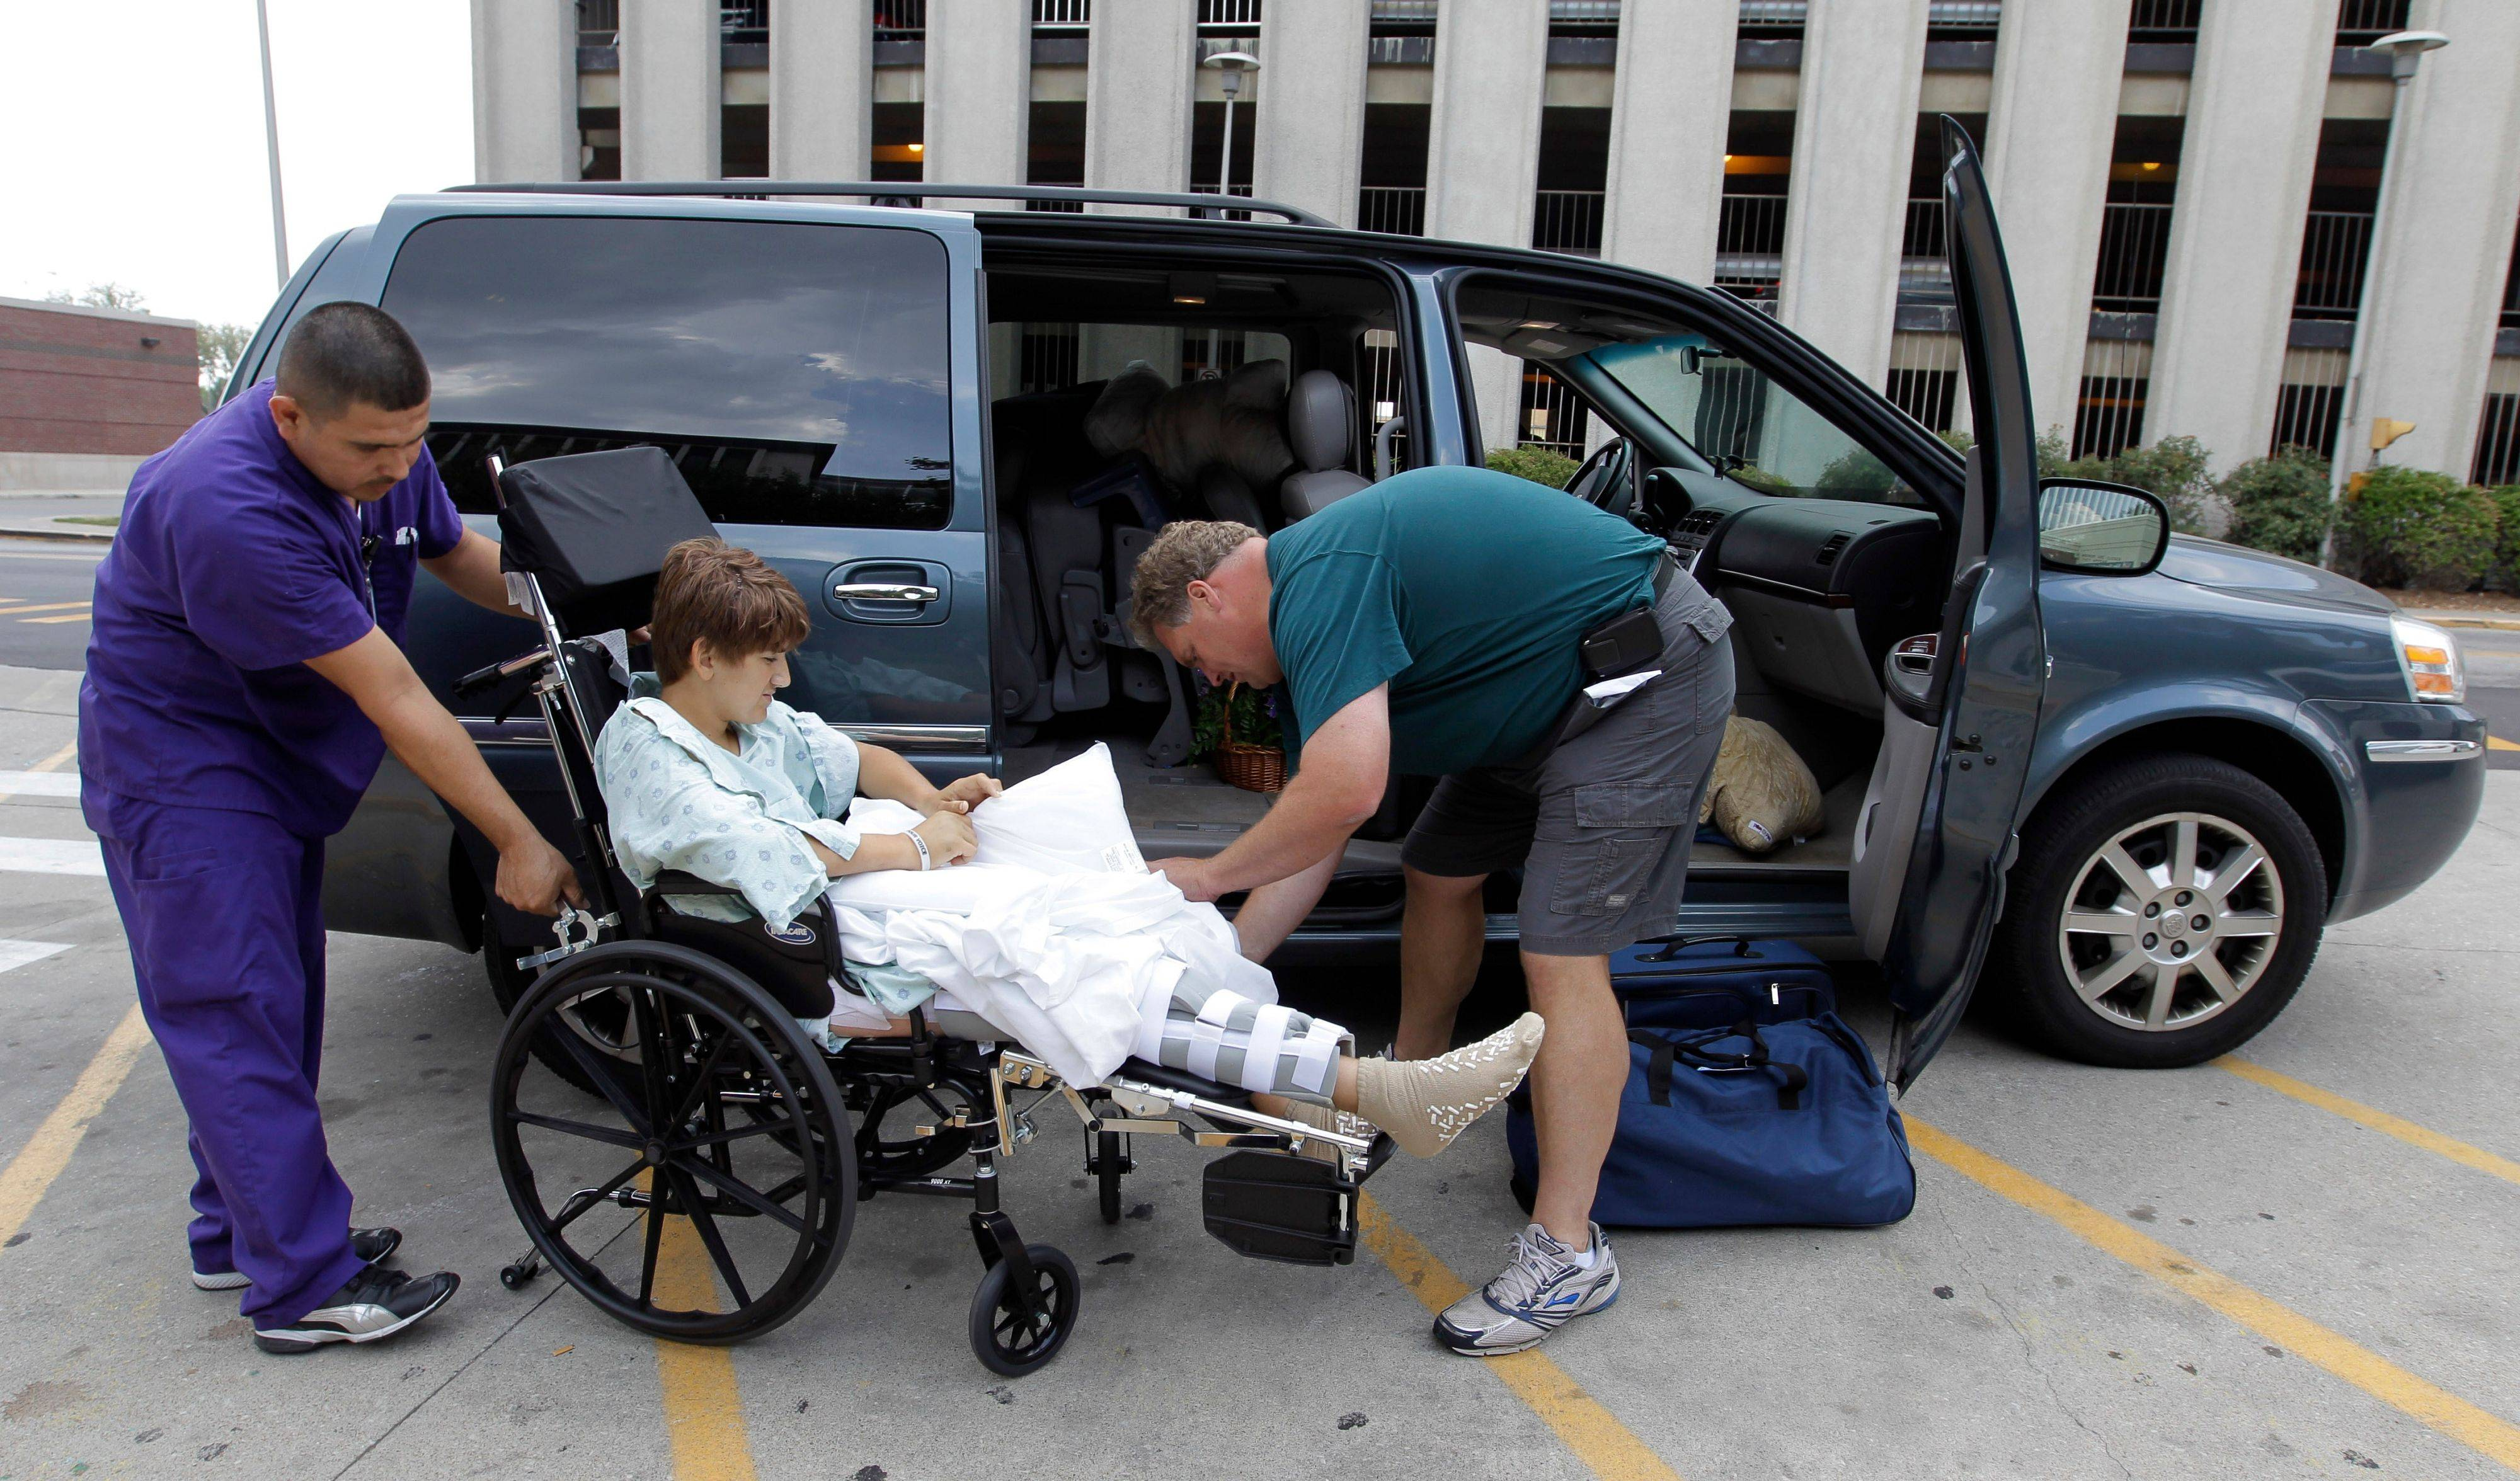 Tim Brunn, of Island Lake helps his son Josh into their van after he was released from Riley Hospital for Children in Indianapolis. Josh, along with his mom, Karen, were injured when a stage collapsed at the Indiana State Fair last week. Personal Service Assistant Irwing Rivera helps the Brunns.